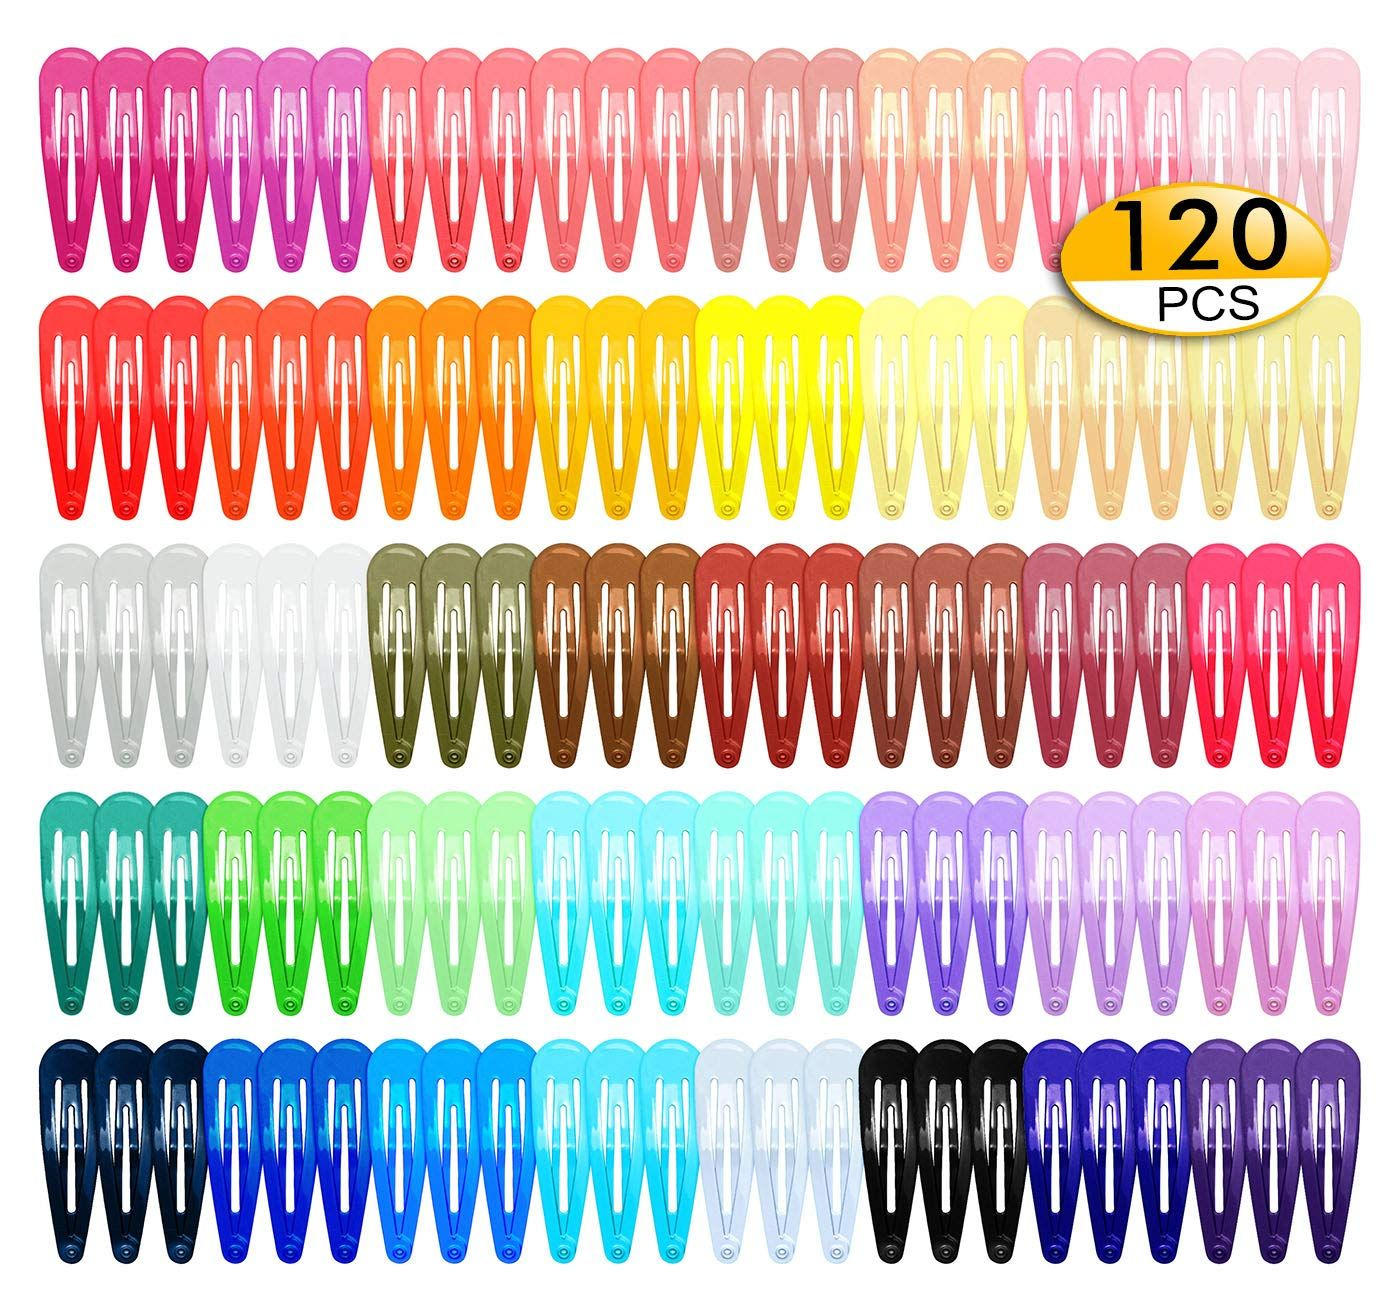 120 Pack 2 Inch Hair Clips 40 Assorted Colors Snap Hair Clips Hair Barrettes Snap Barrettes For Girls Kids Women In 2020 Hair Clips Girls Hair Clips Hair Barrettes